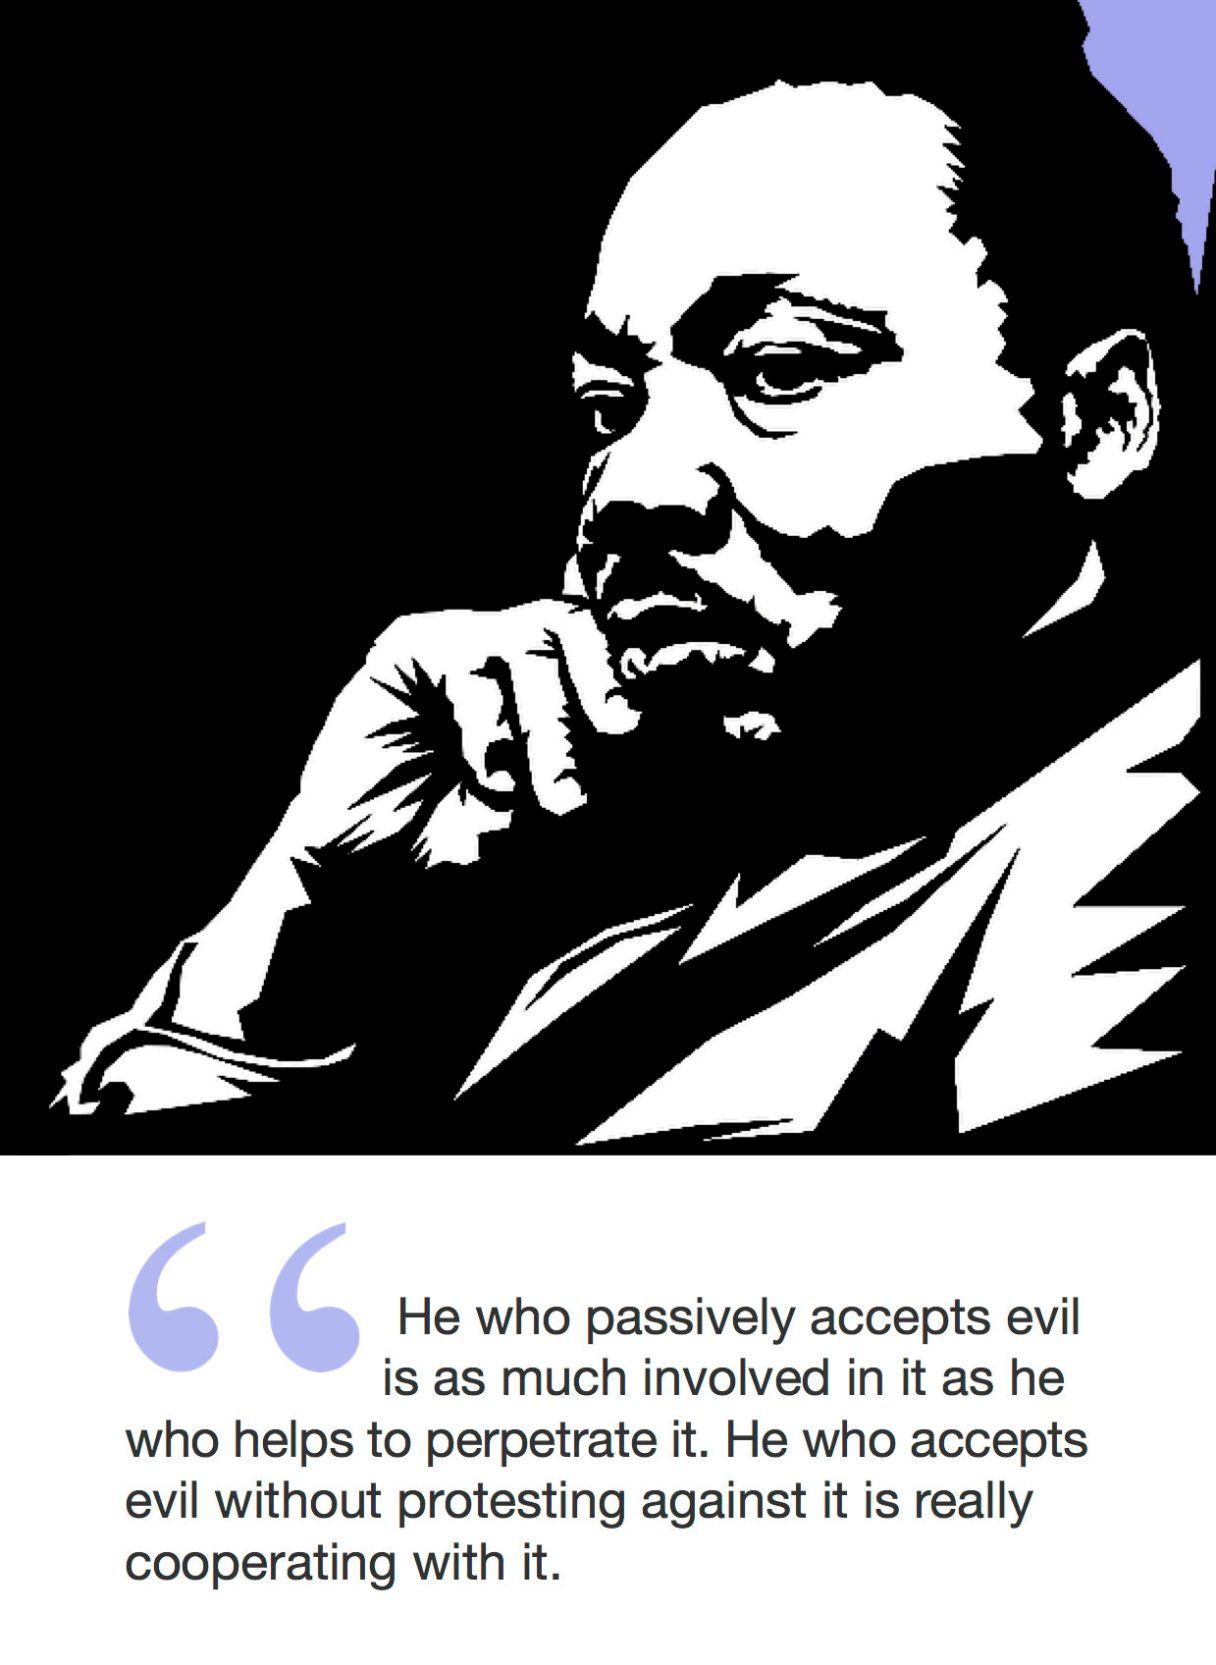 """Citat af Martin Luther King: """"He who passively accepts evil is as much involved in it as he who helps to perpetrate it. He who accepts evil without protest against it is really cooperating with it."""" Originalfoto: pixabay.com. Citatillustration: Maria Busch"""